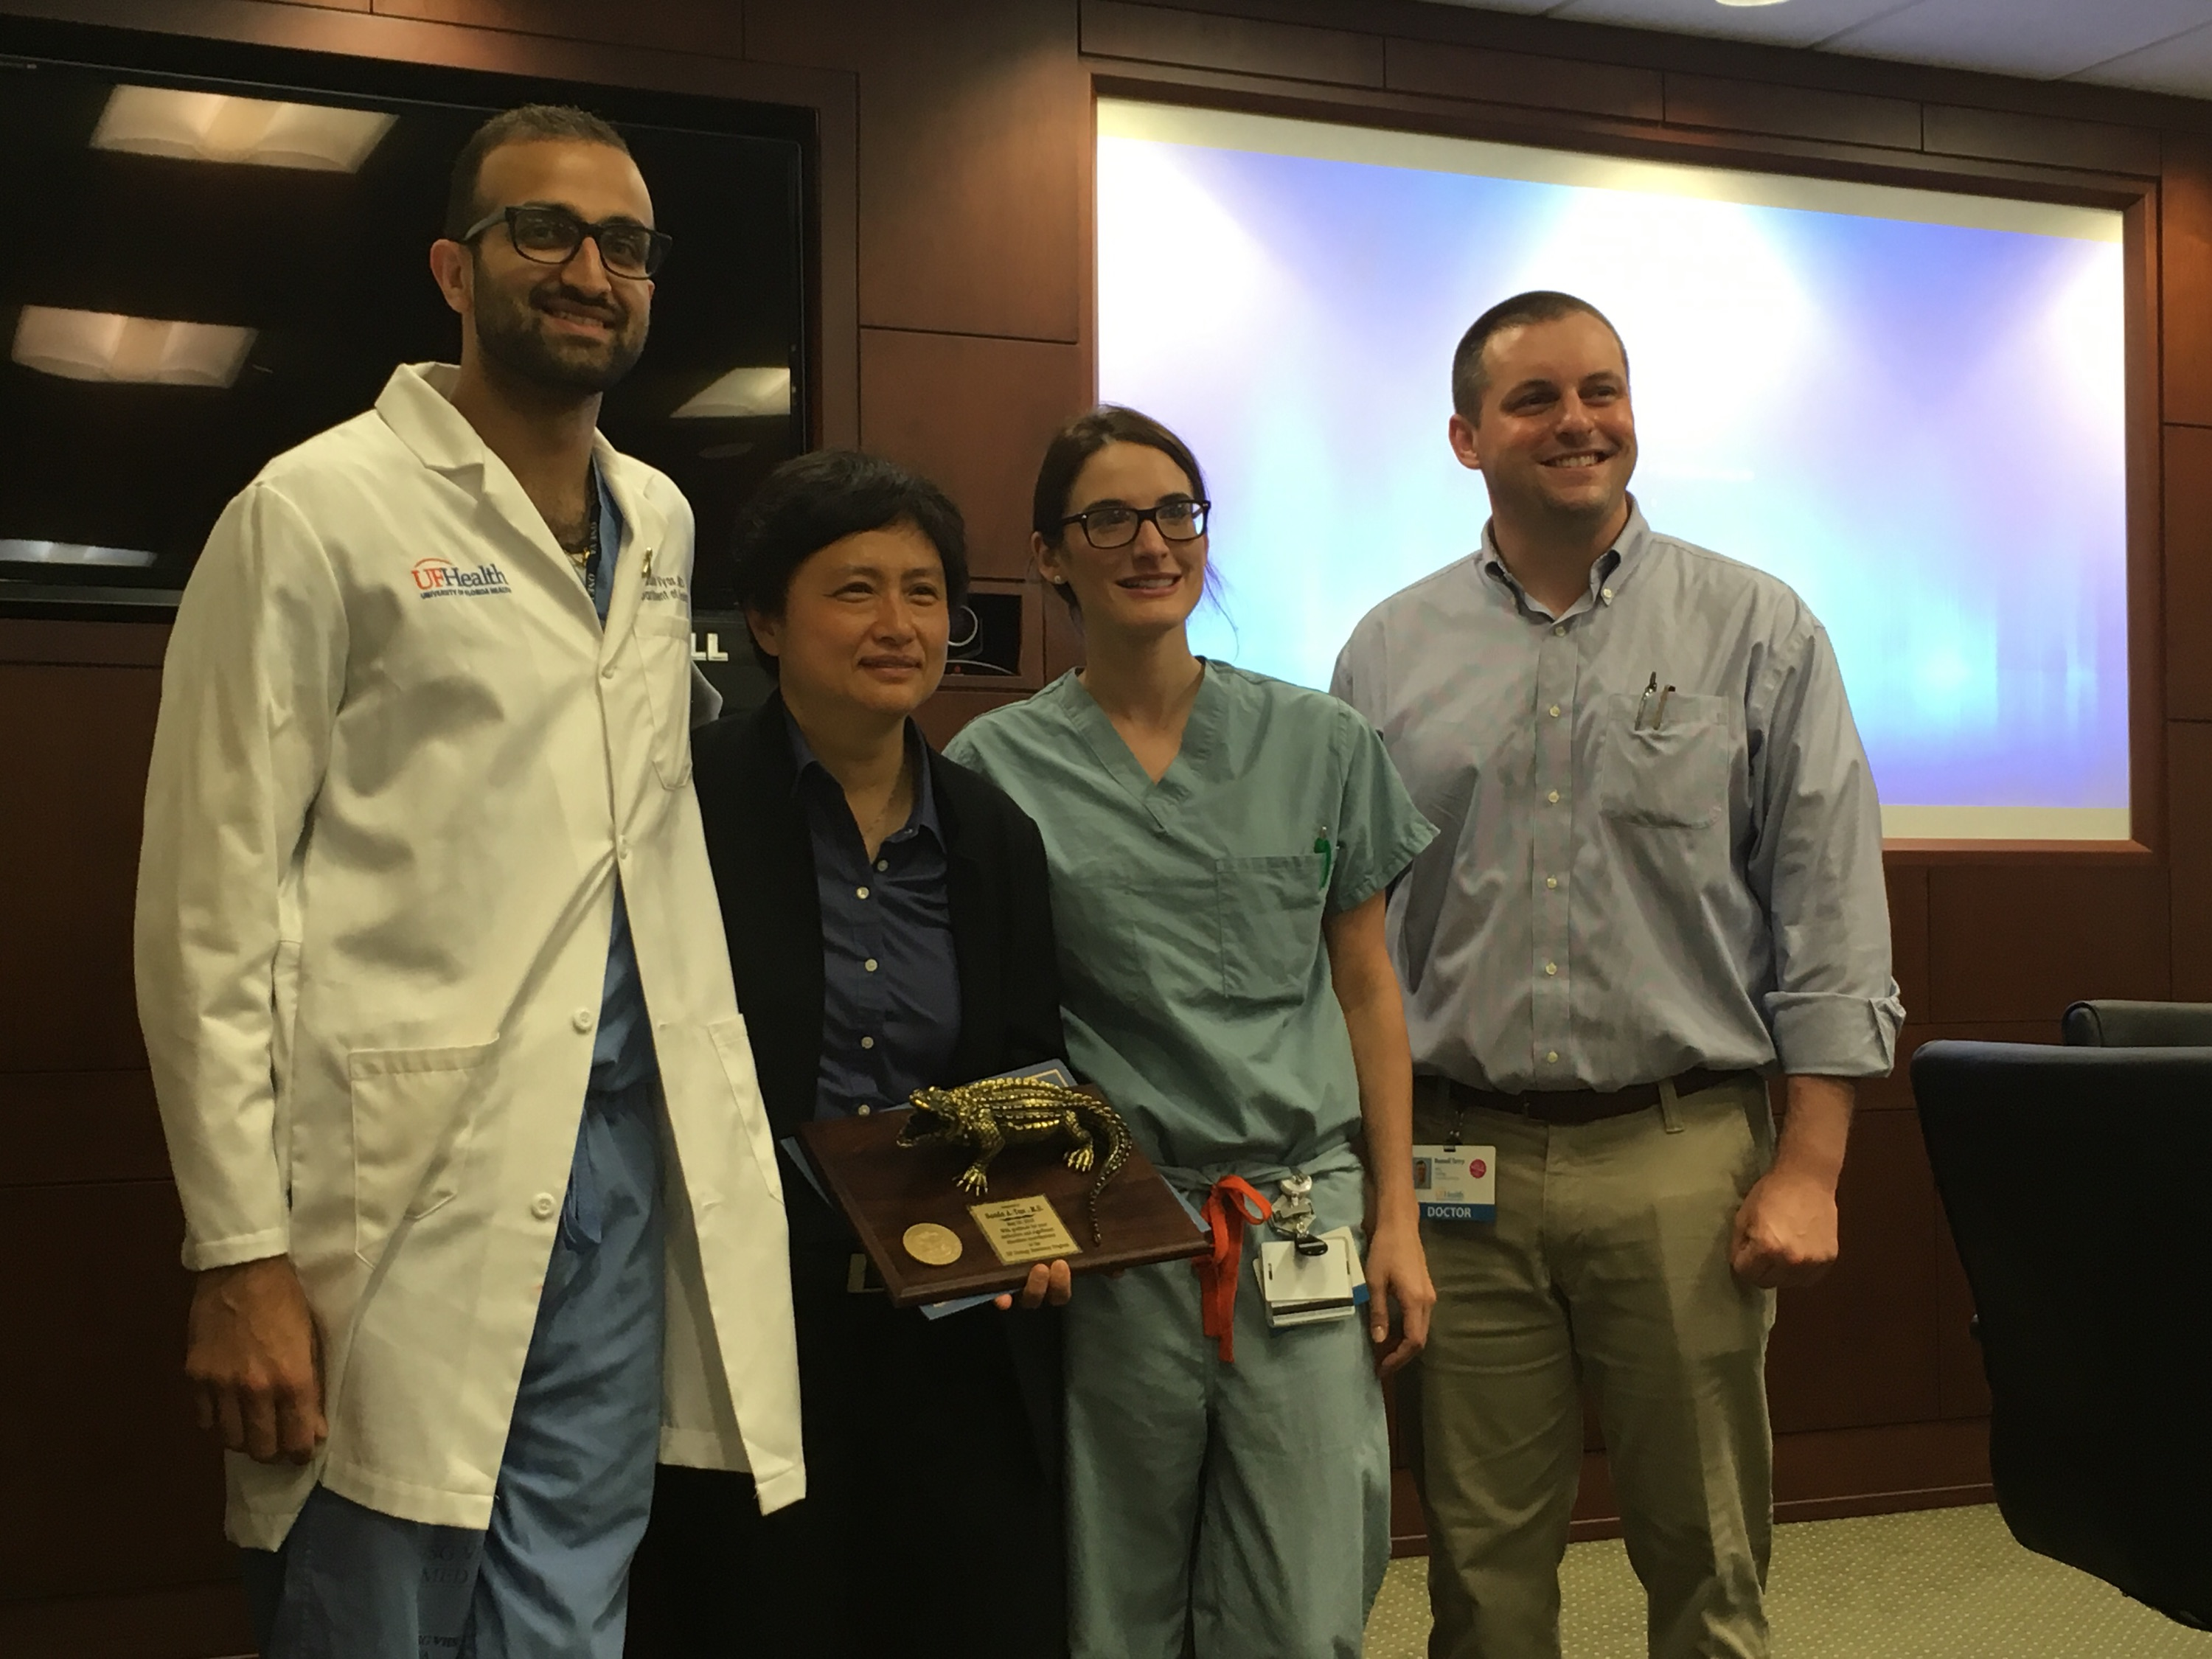 PICTURE OF DR TAN, DR VYAS, DR WARDENBURG AND DR TERRY